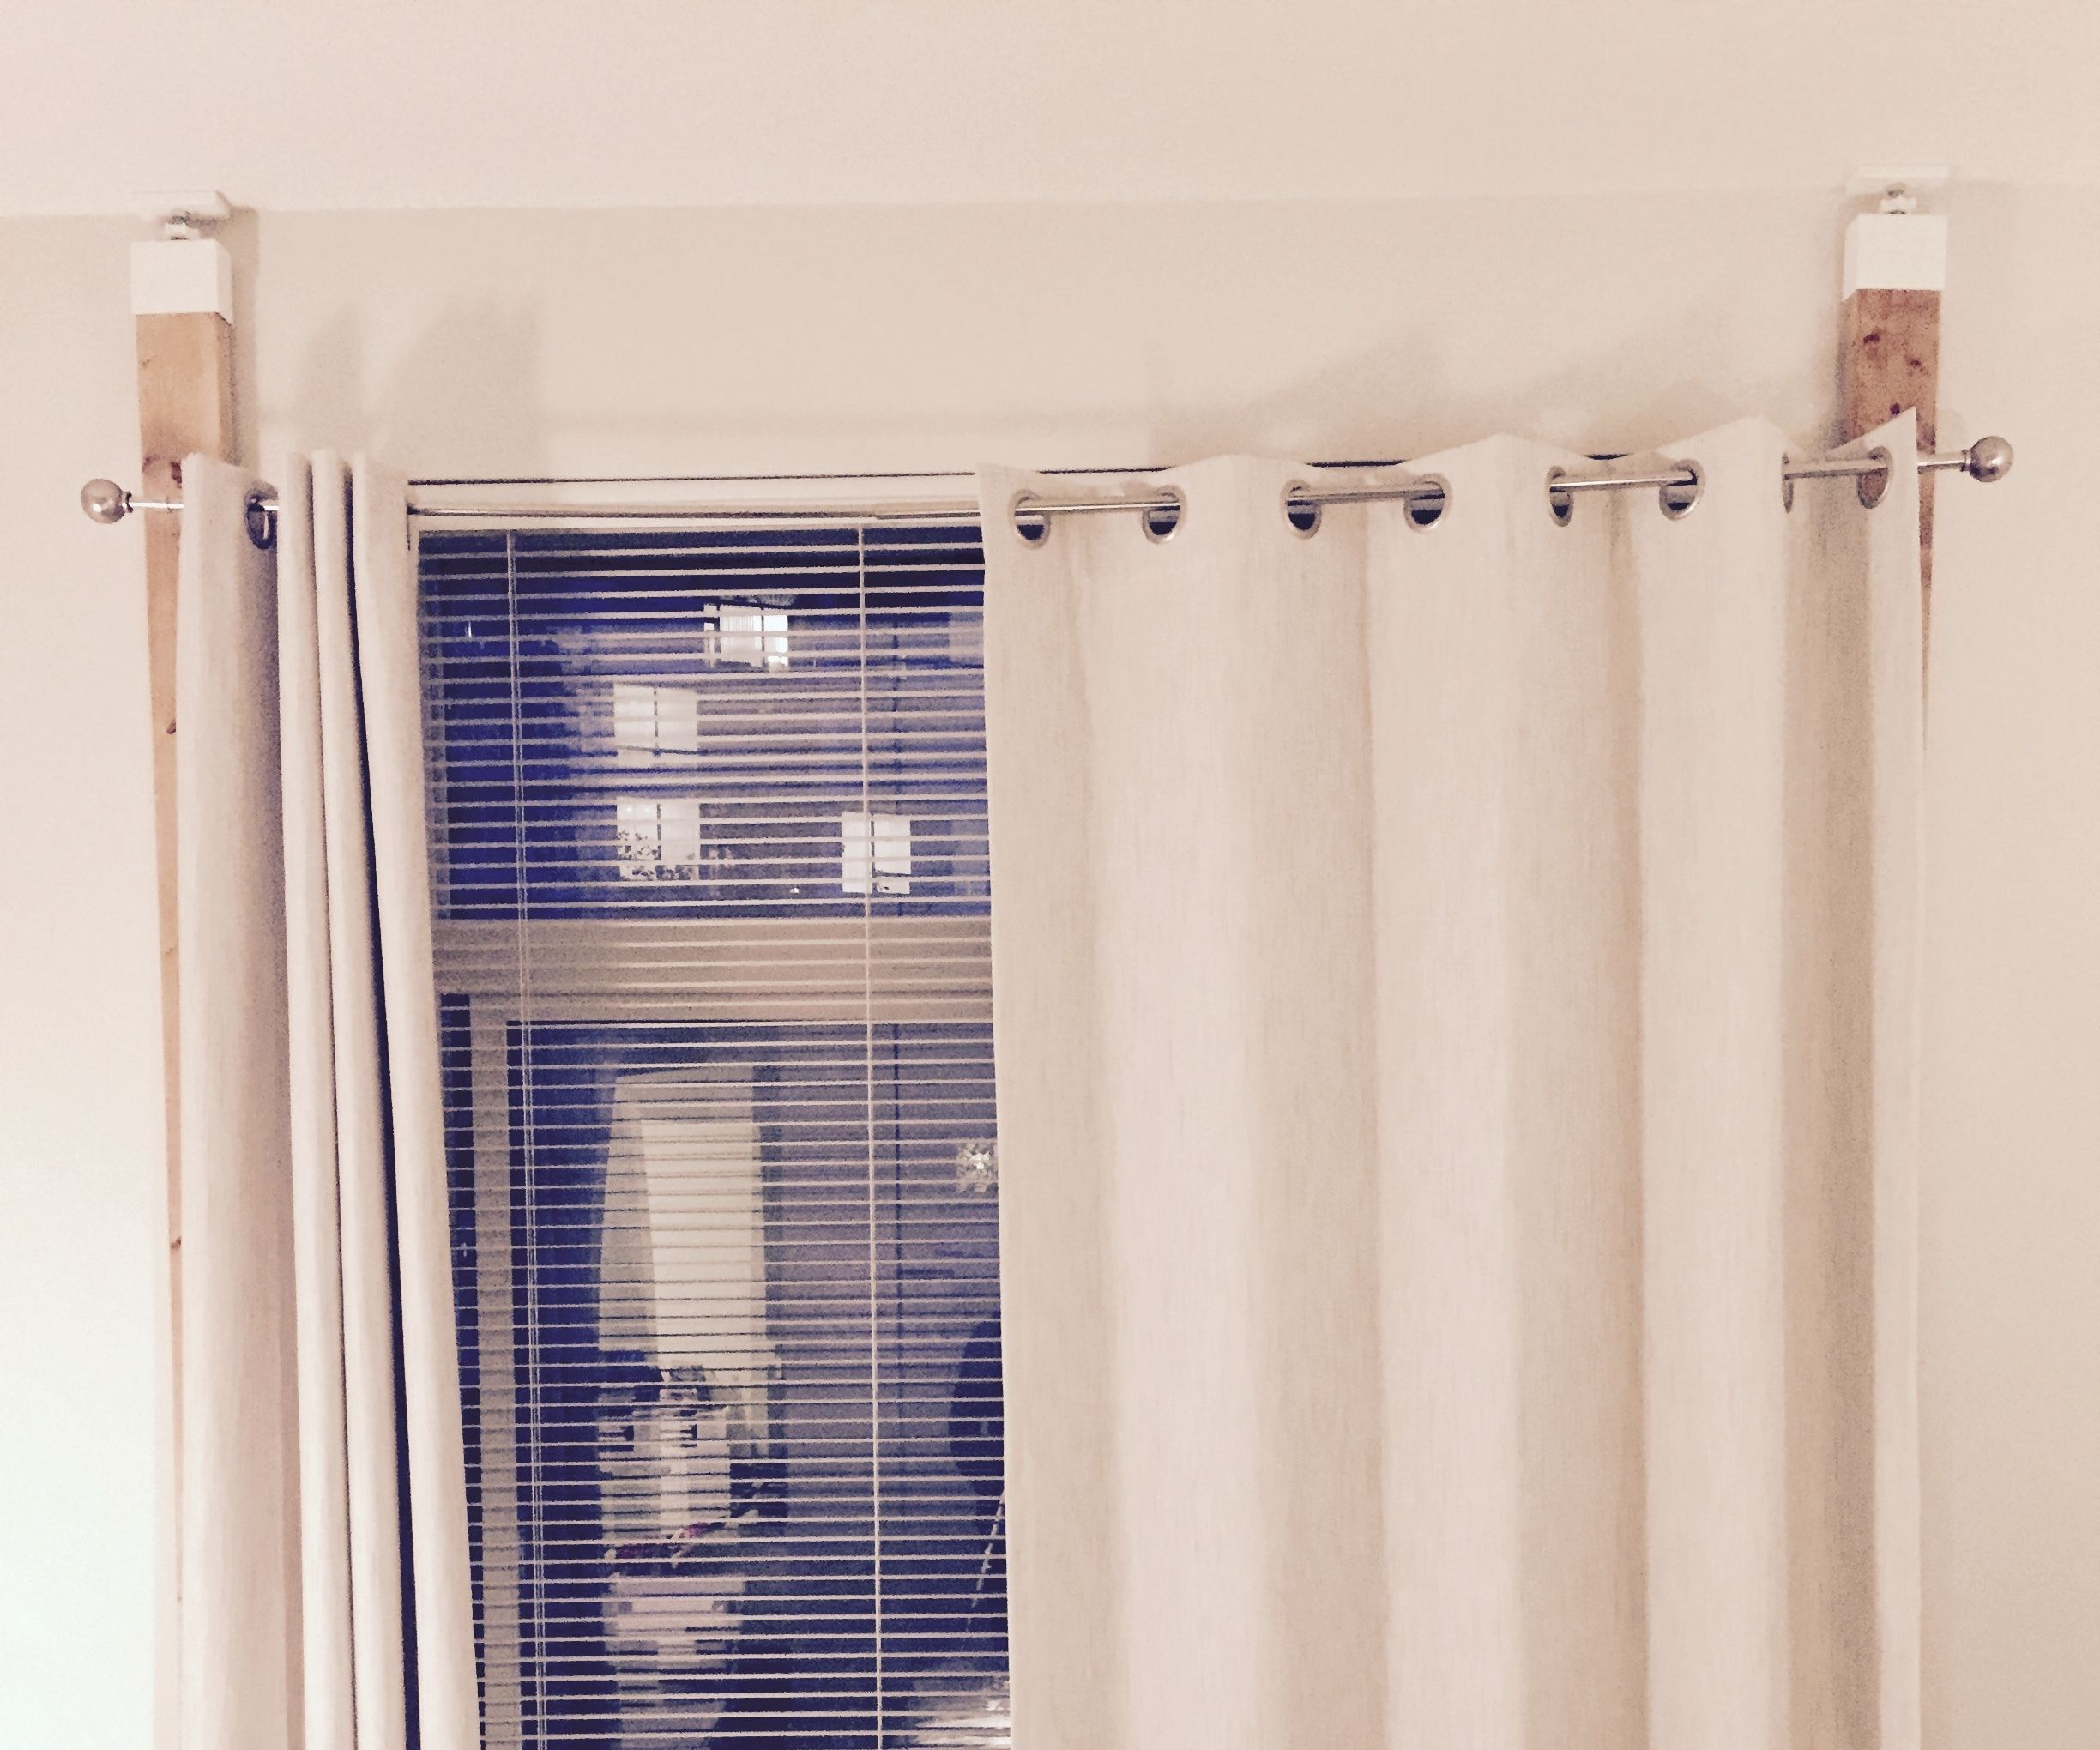 Hang Curtains Without Drilling Or Damaging The Wall 15 Steps Instructables